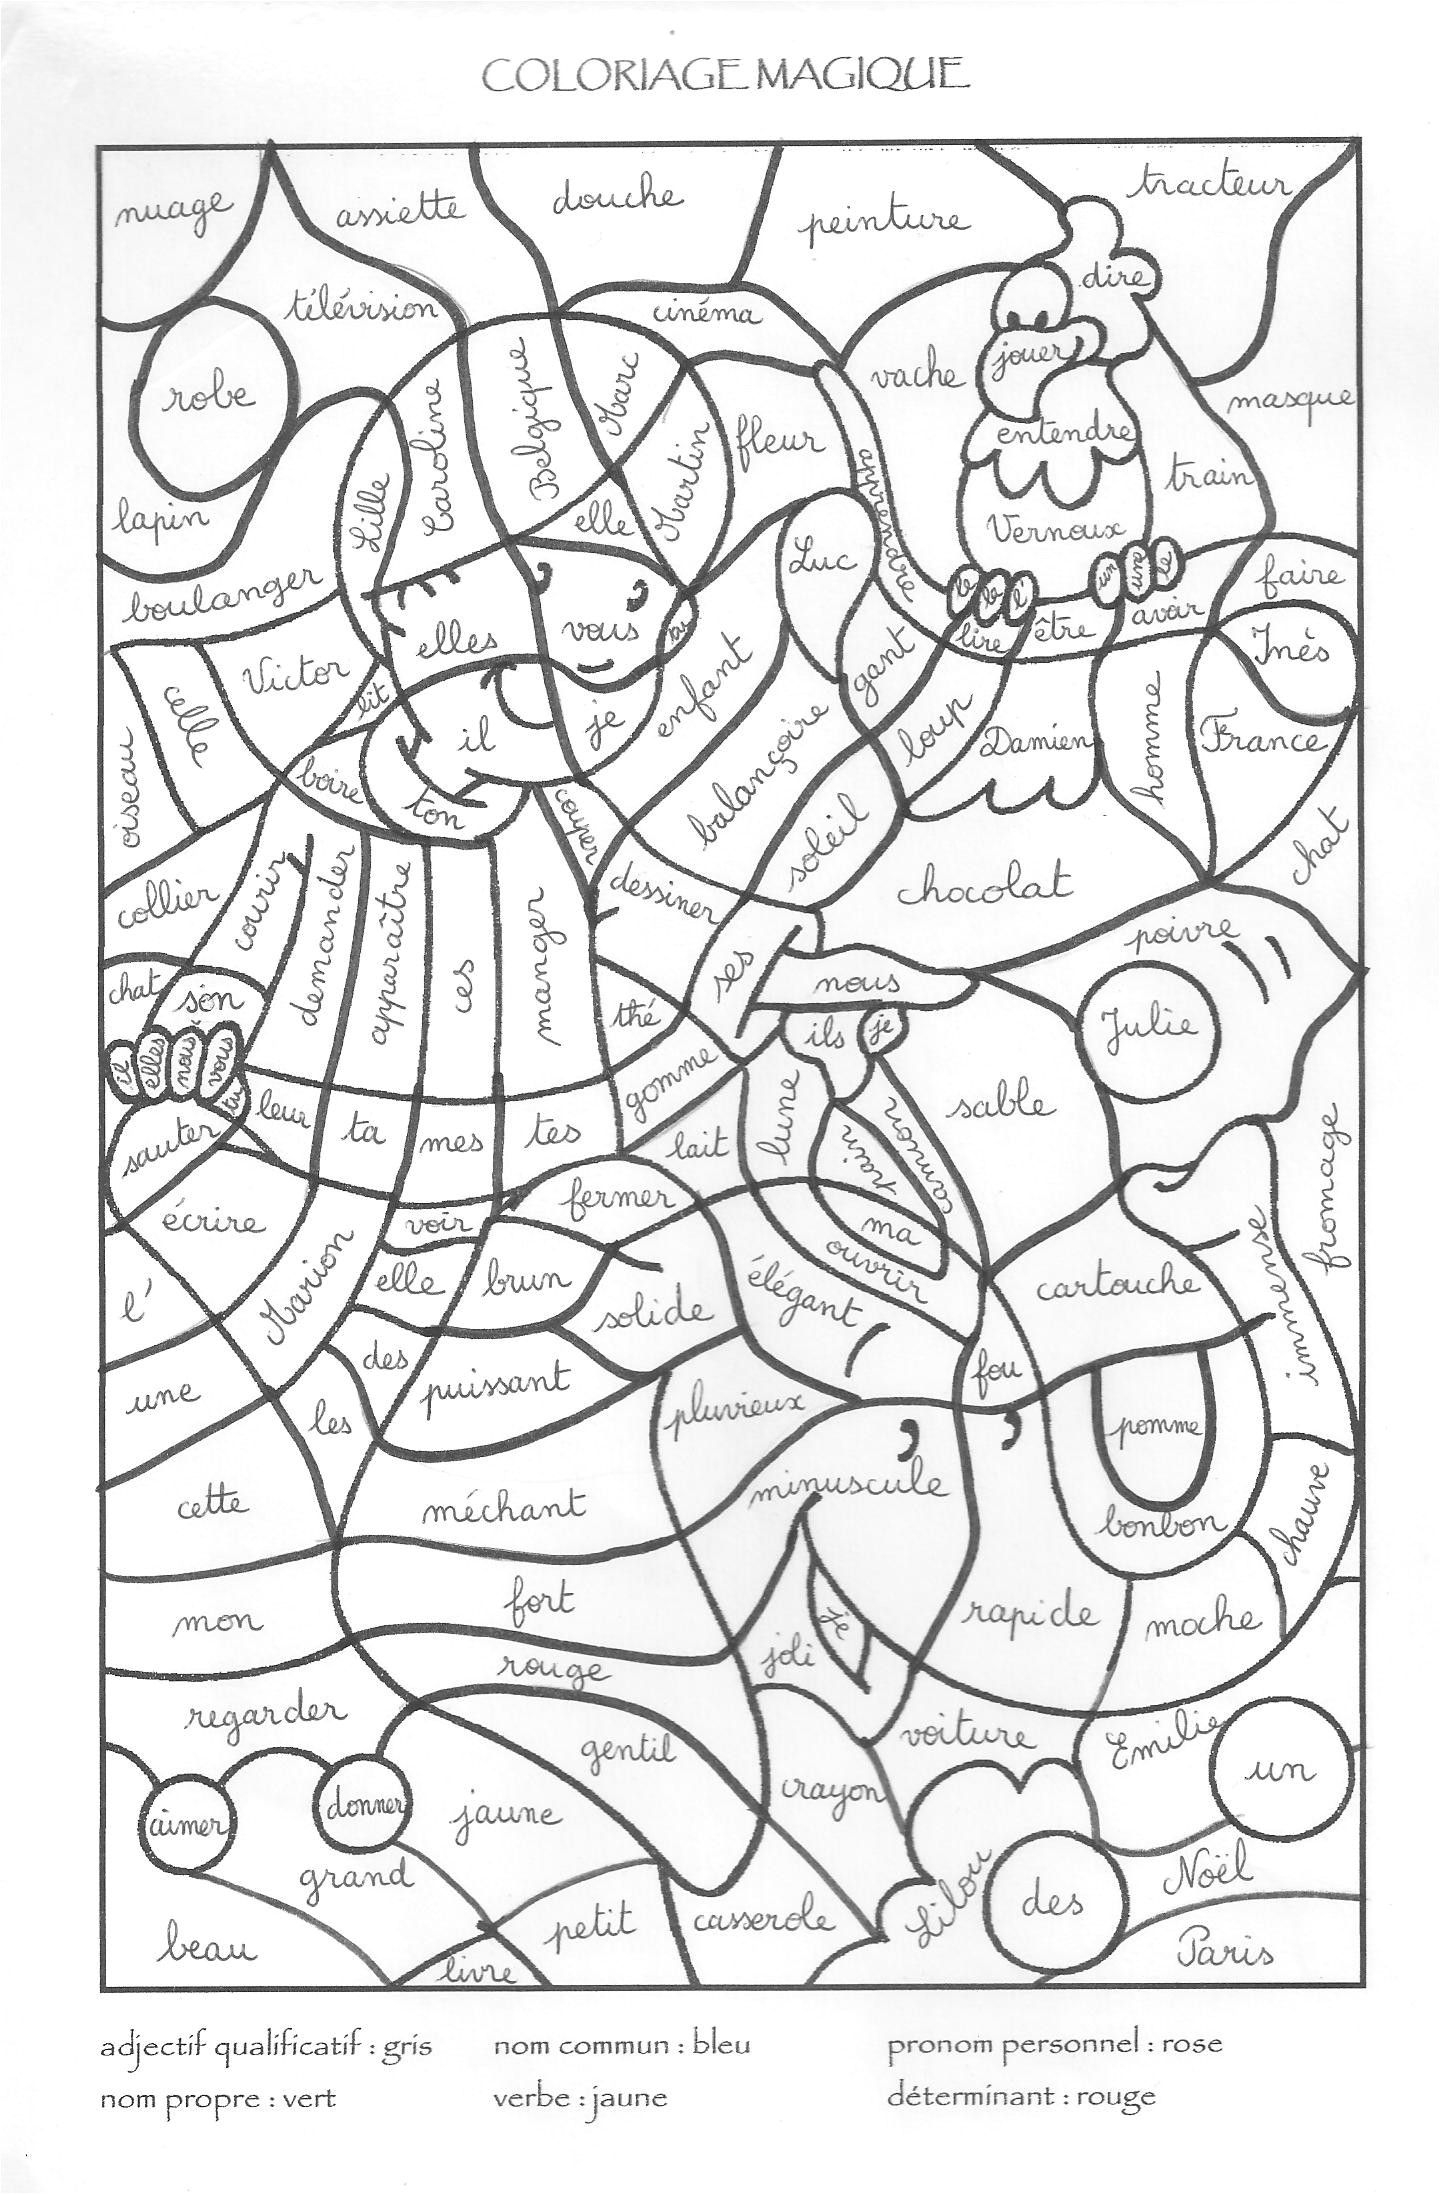 Coloriage Magique Anglais Cycle 3 | French Worksheets tout Coloriage Magique Maths Ce2